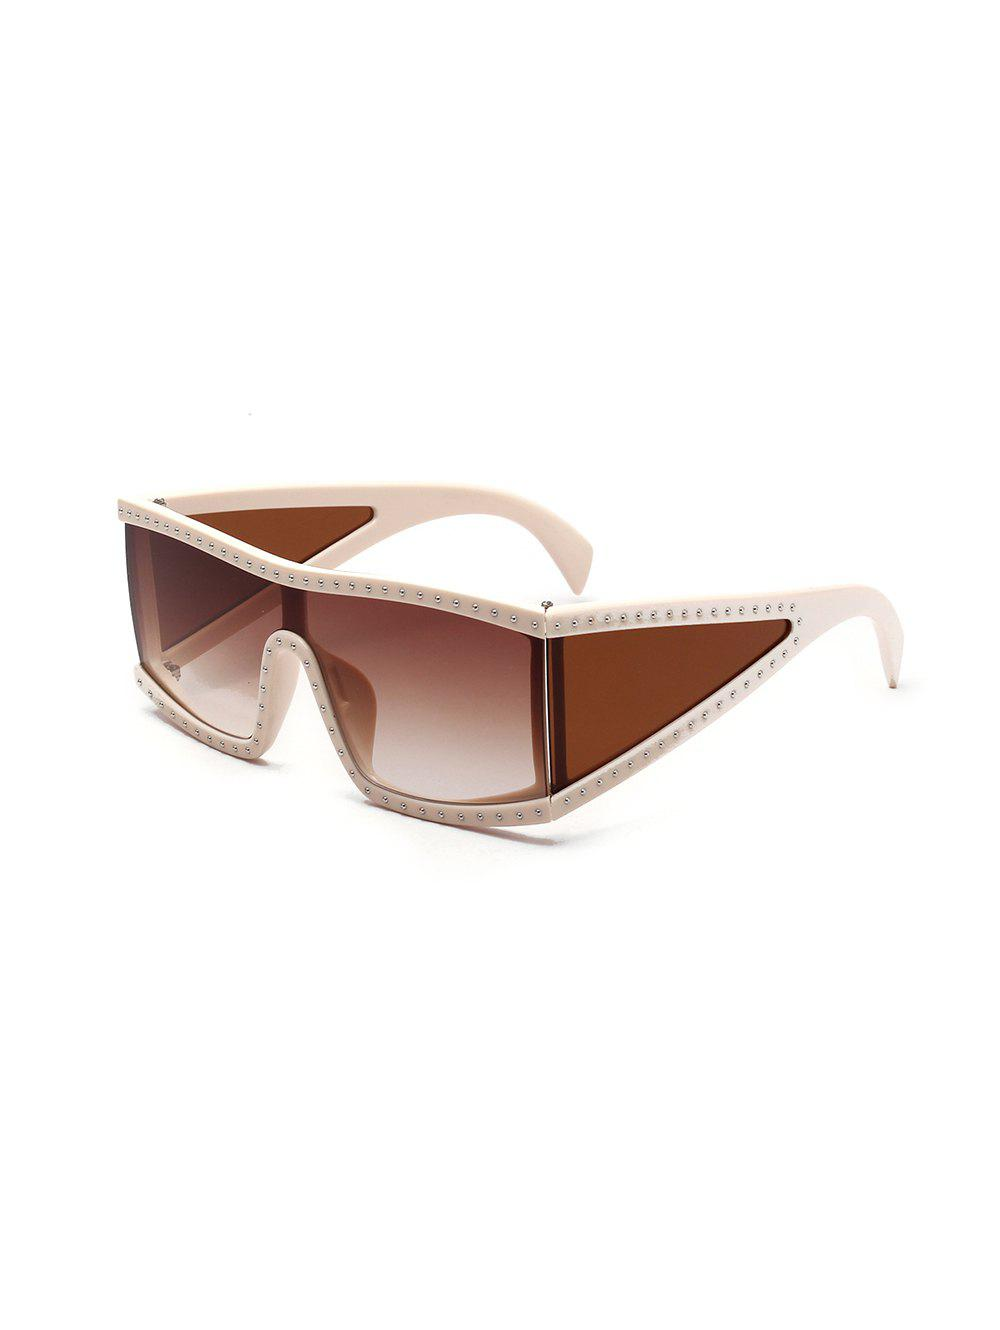 Shop Oversized Square One-piece Rivet Sunglasses